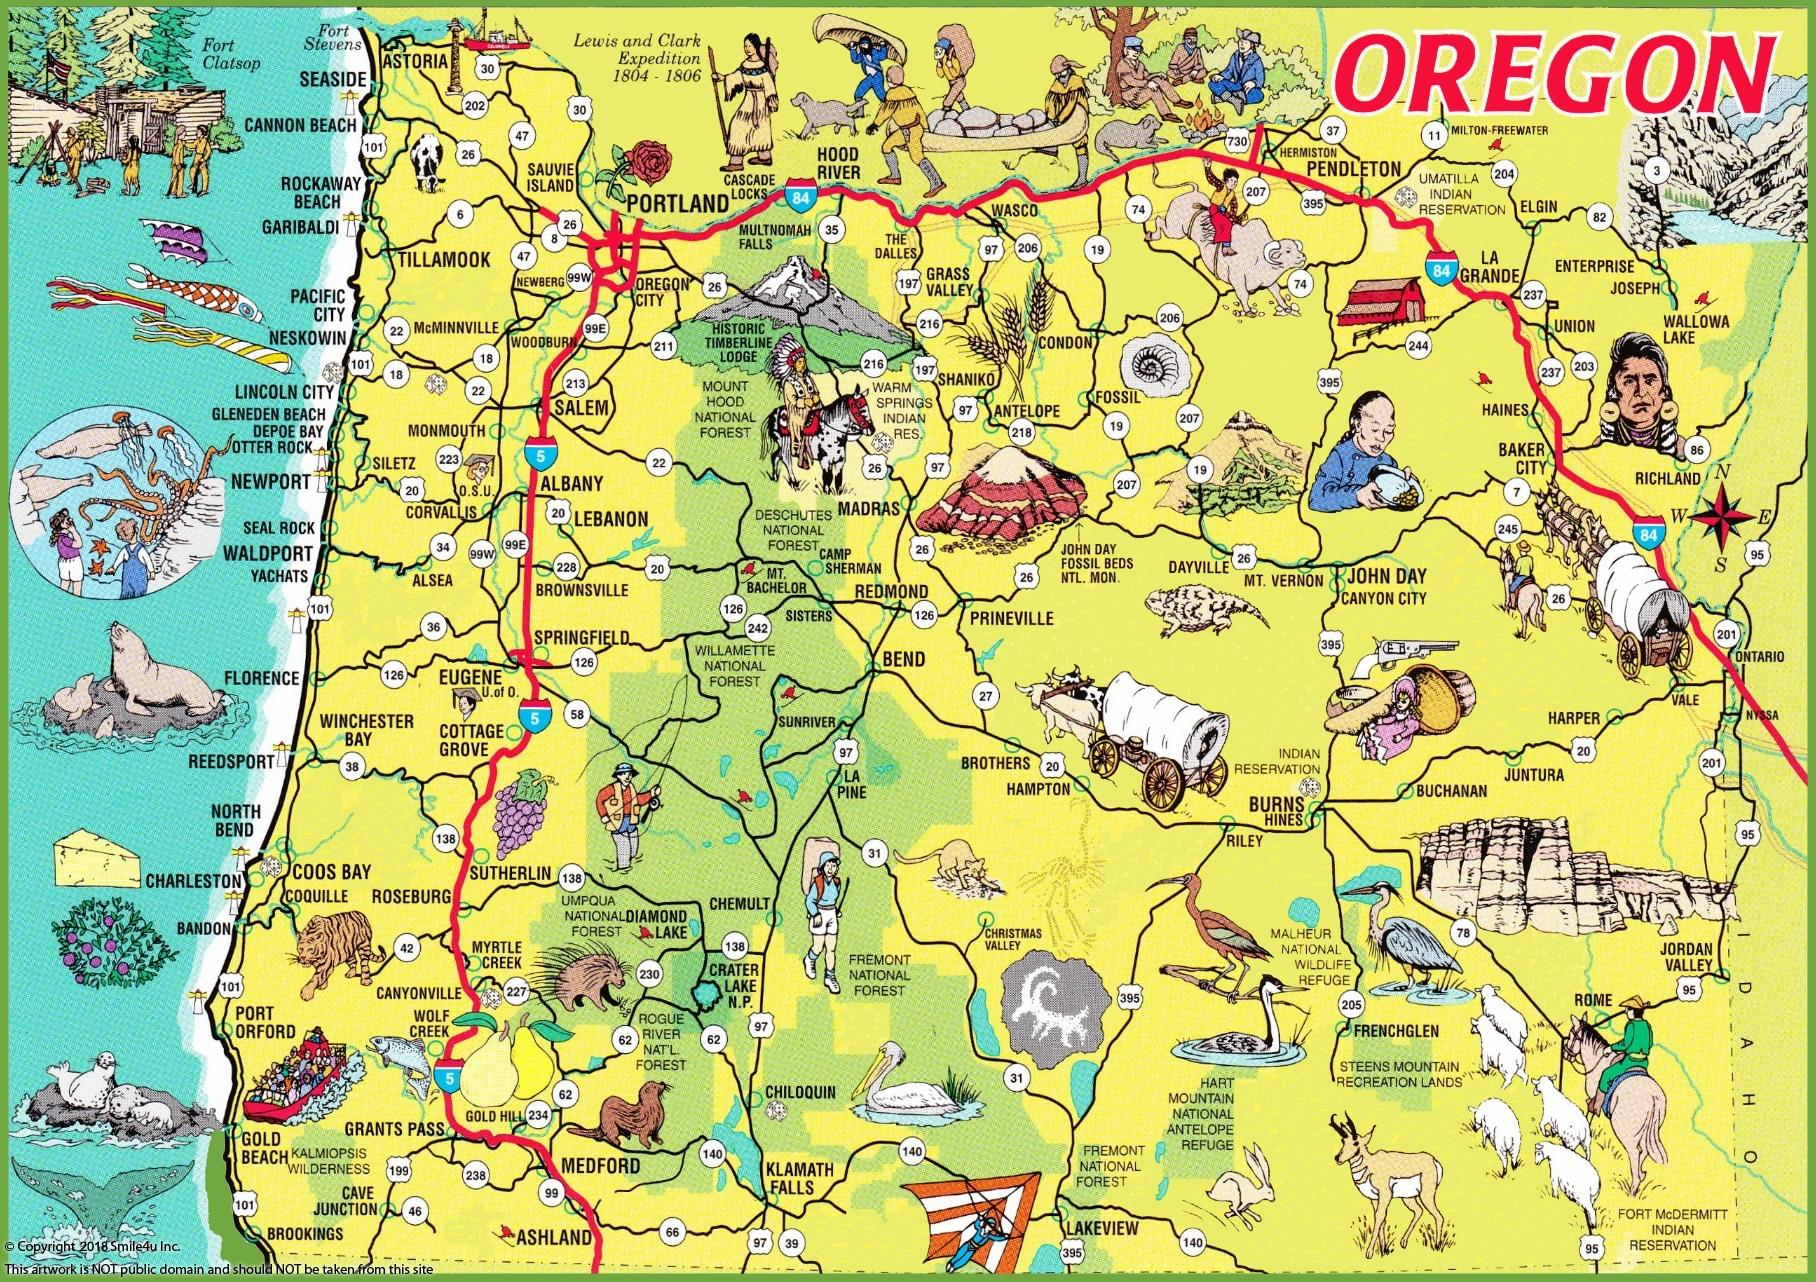 926515_watermarked_pictorial-travel-map-of-oregon.jpg